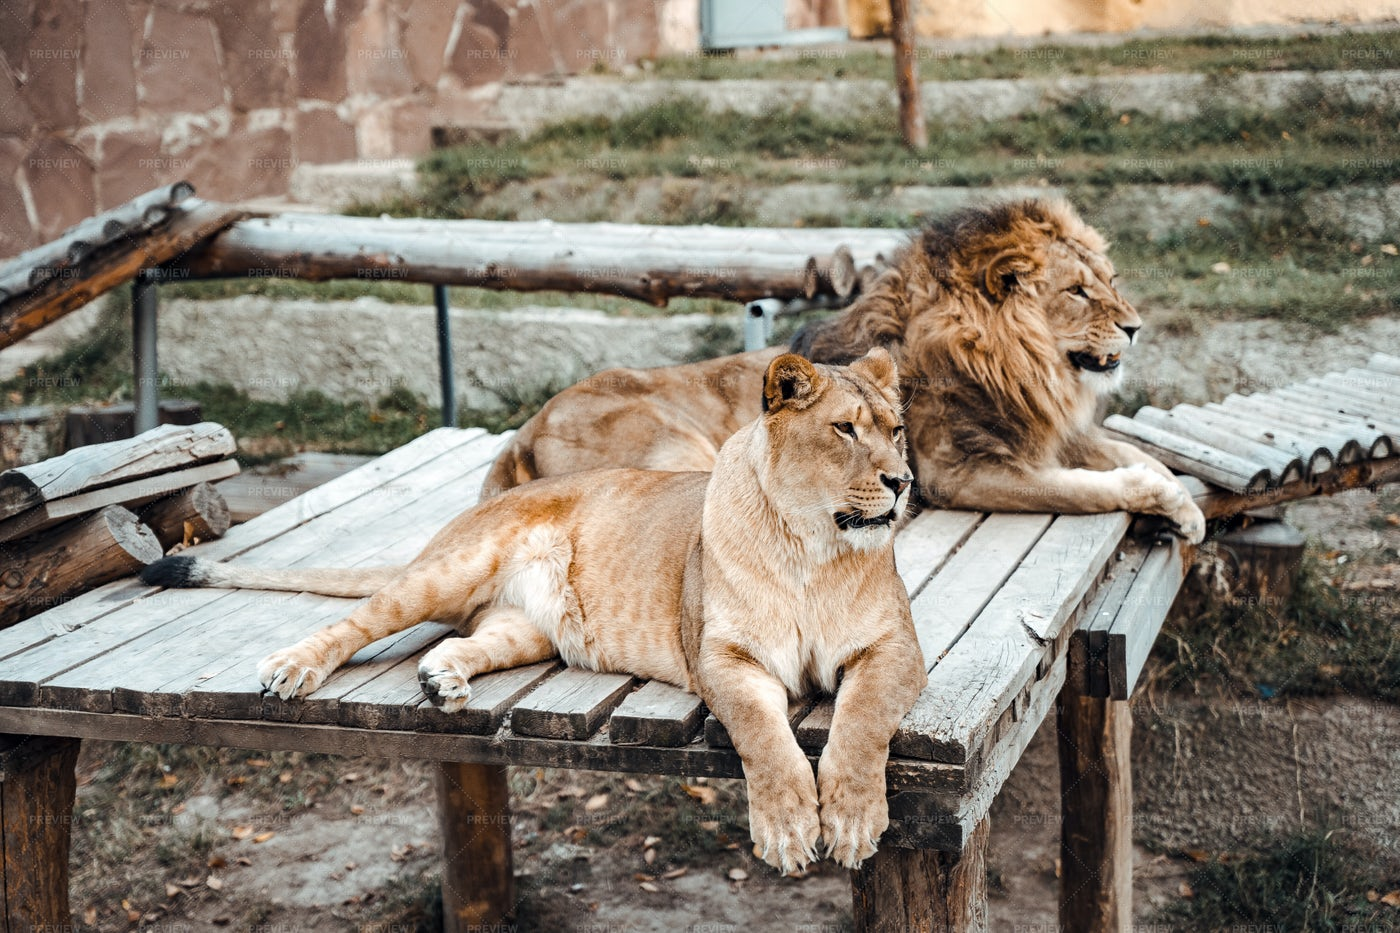 Lion And Lioness In Zoo: Stock Photos